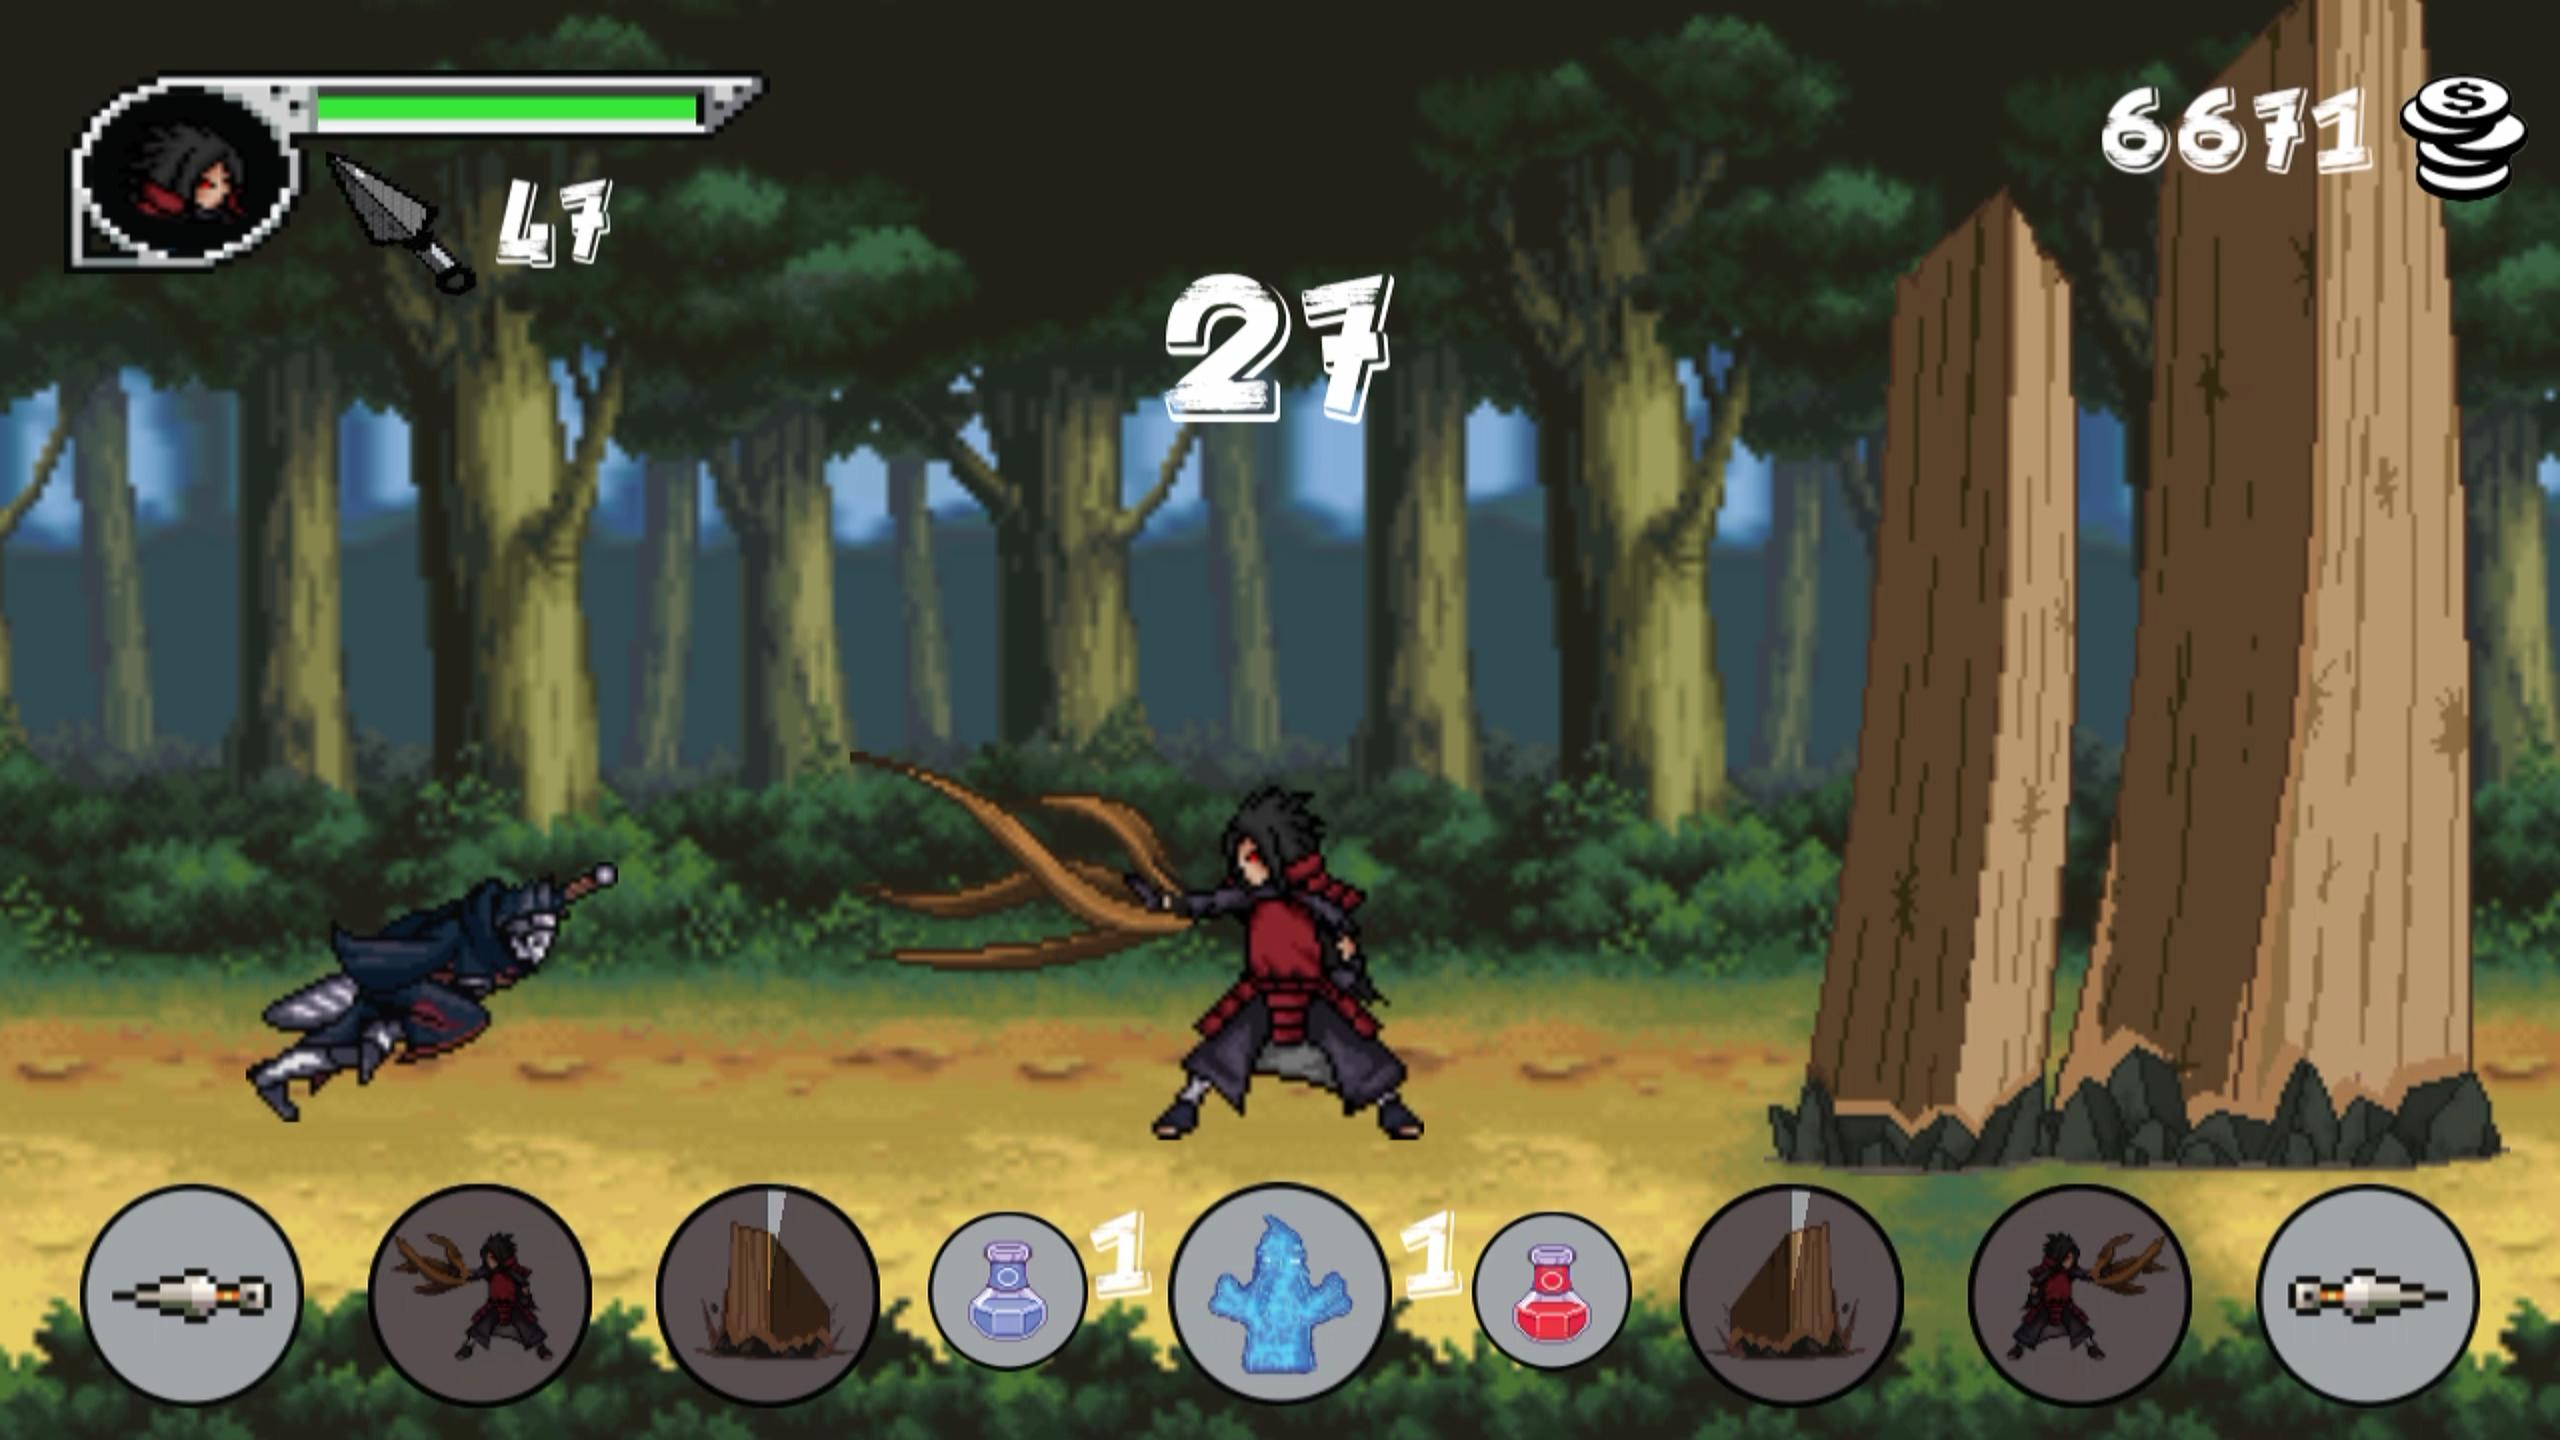 Anime War for Android - APK Download